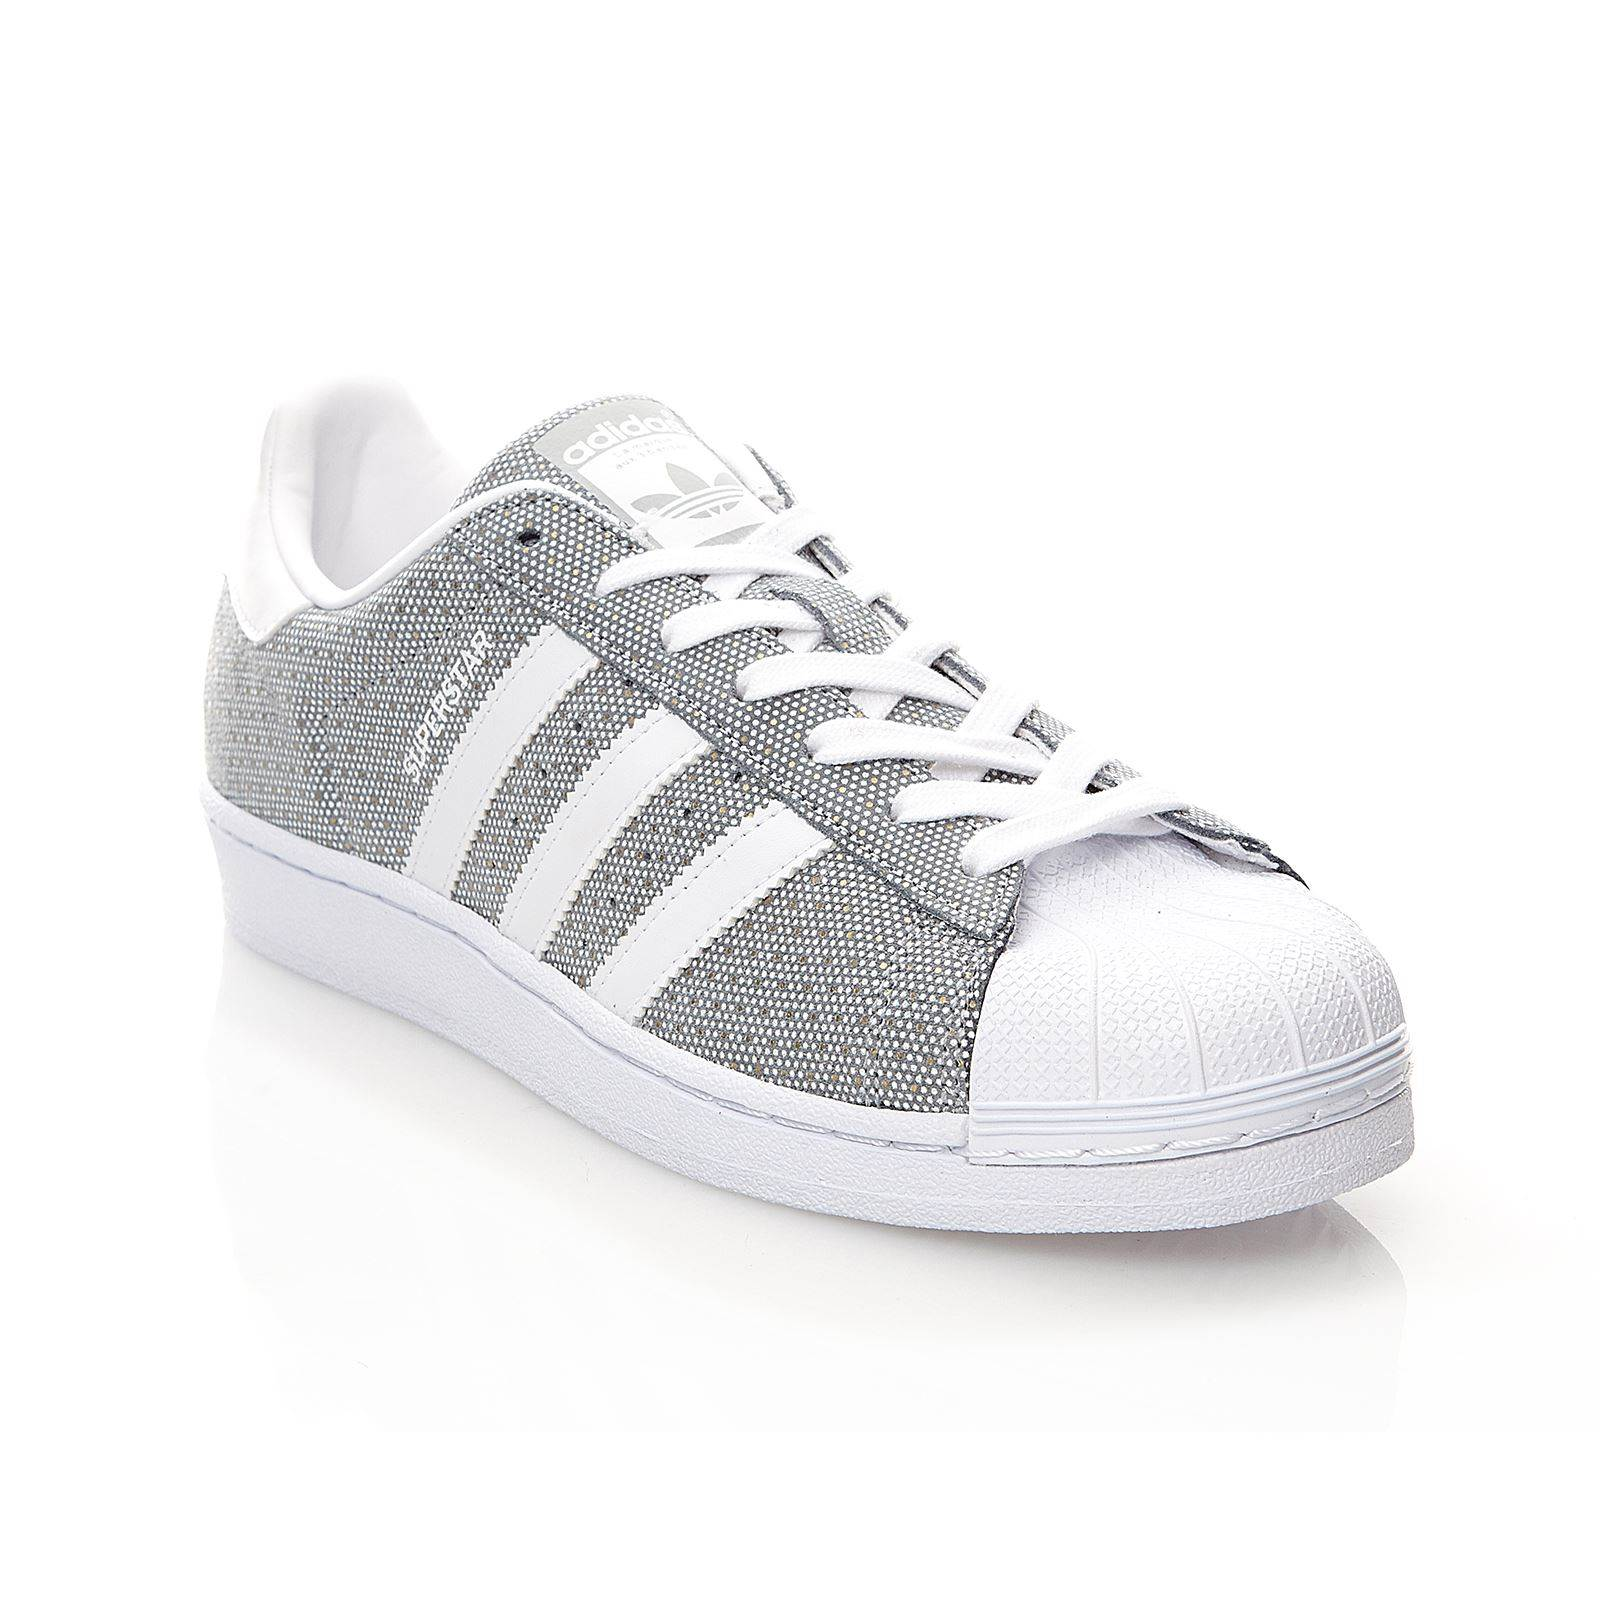 adidas originals superstar w ledersneakers grau. Black Bedroom Furniture Sets. Home Design Ideas